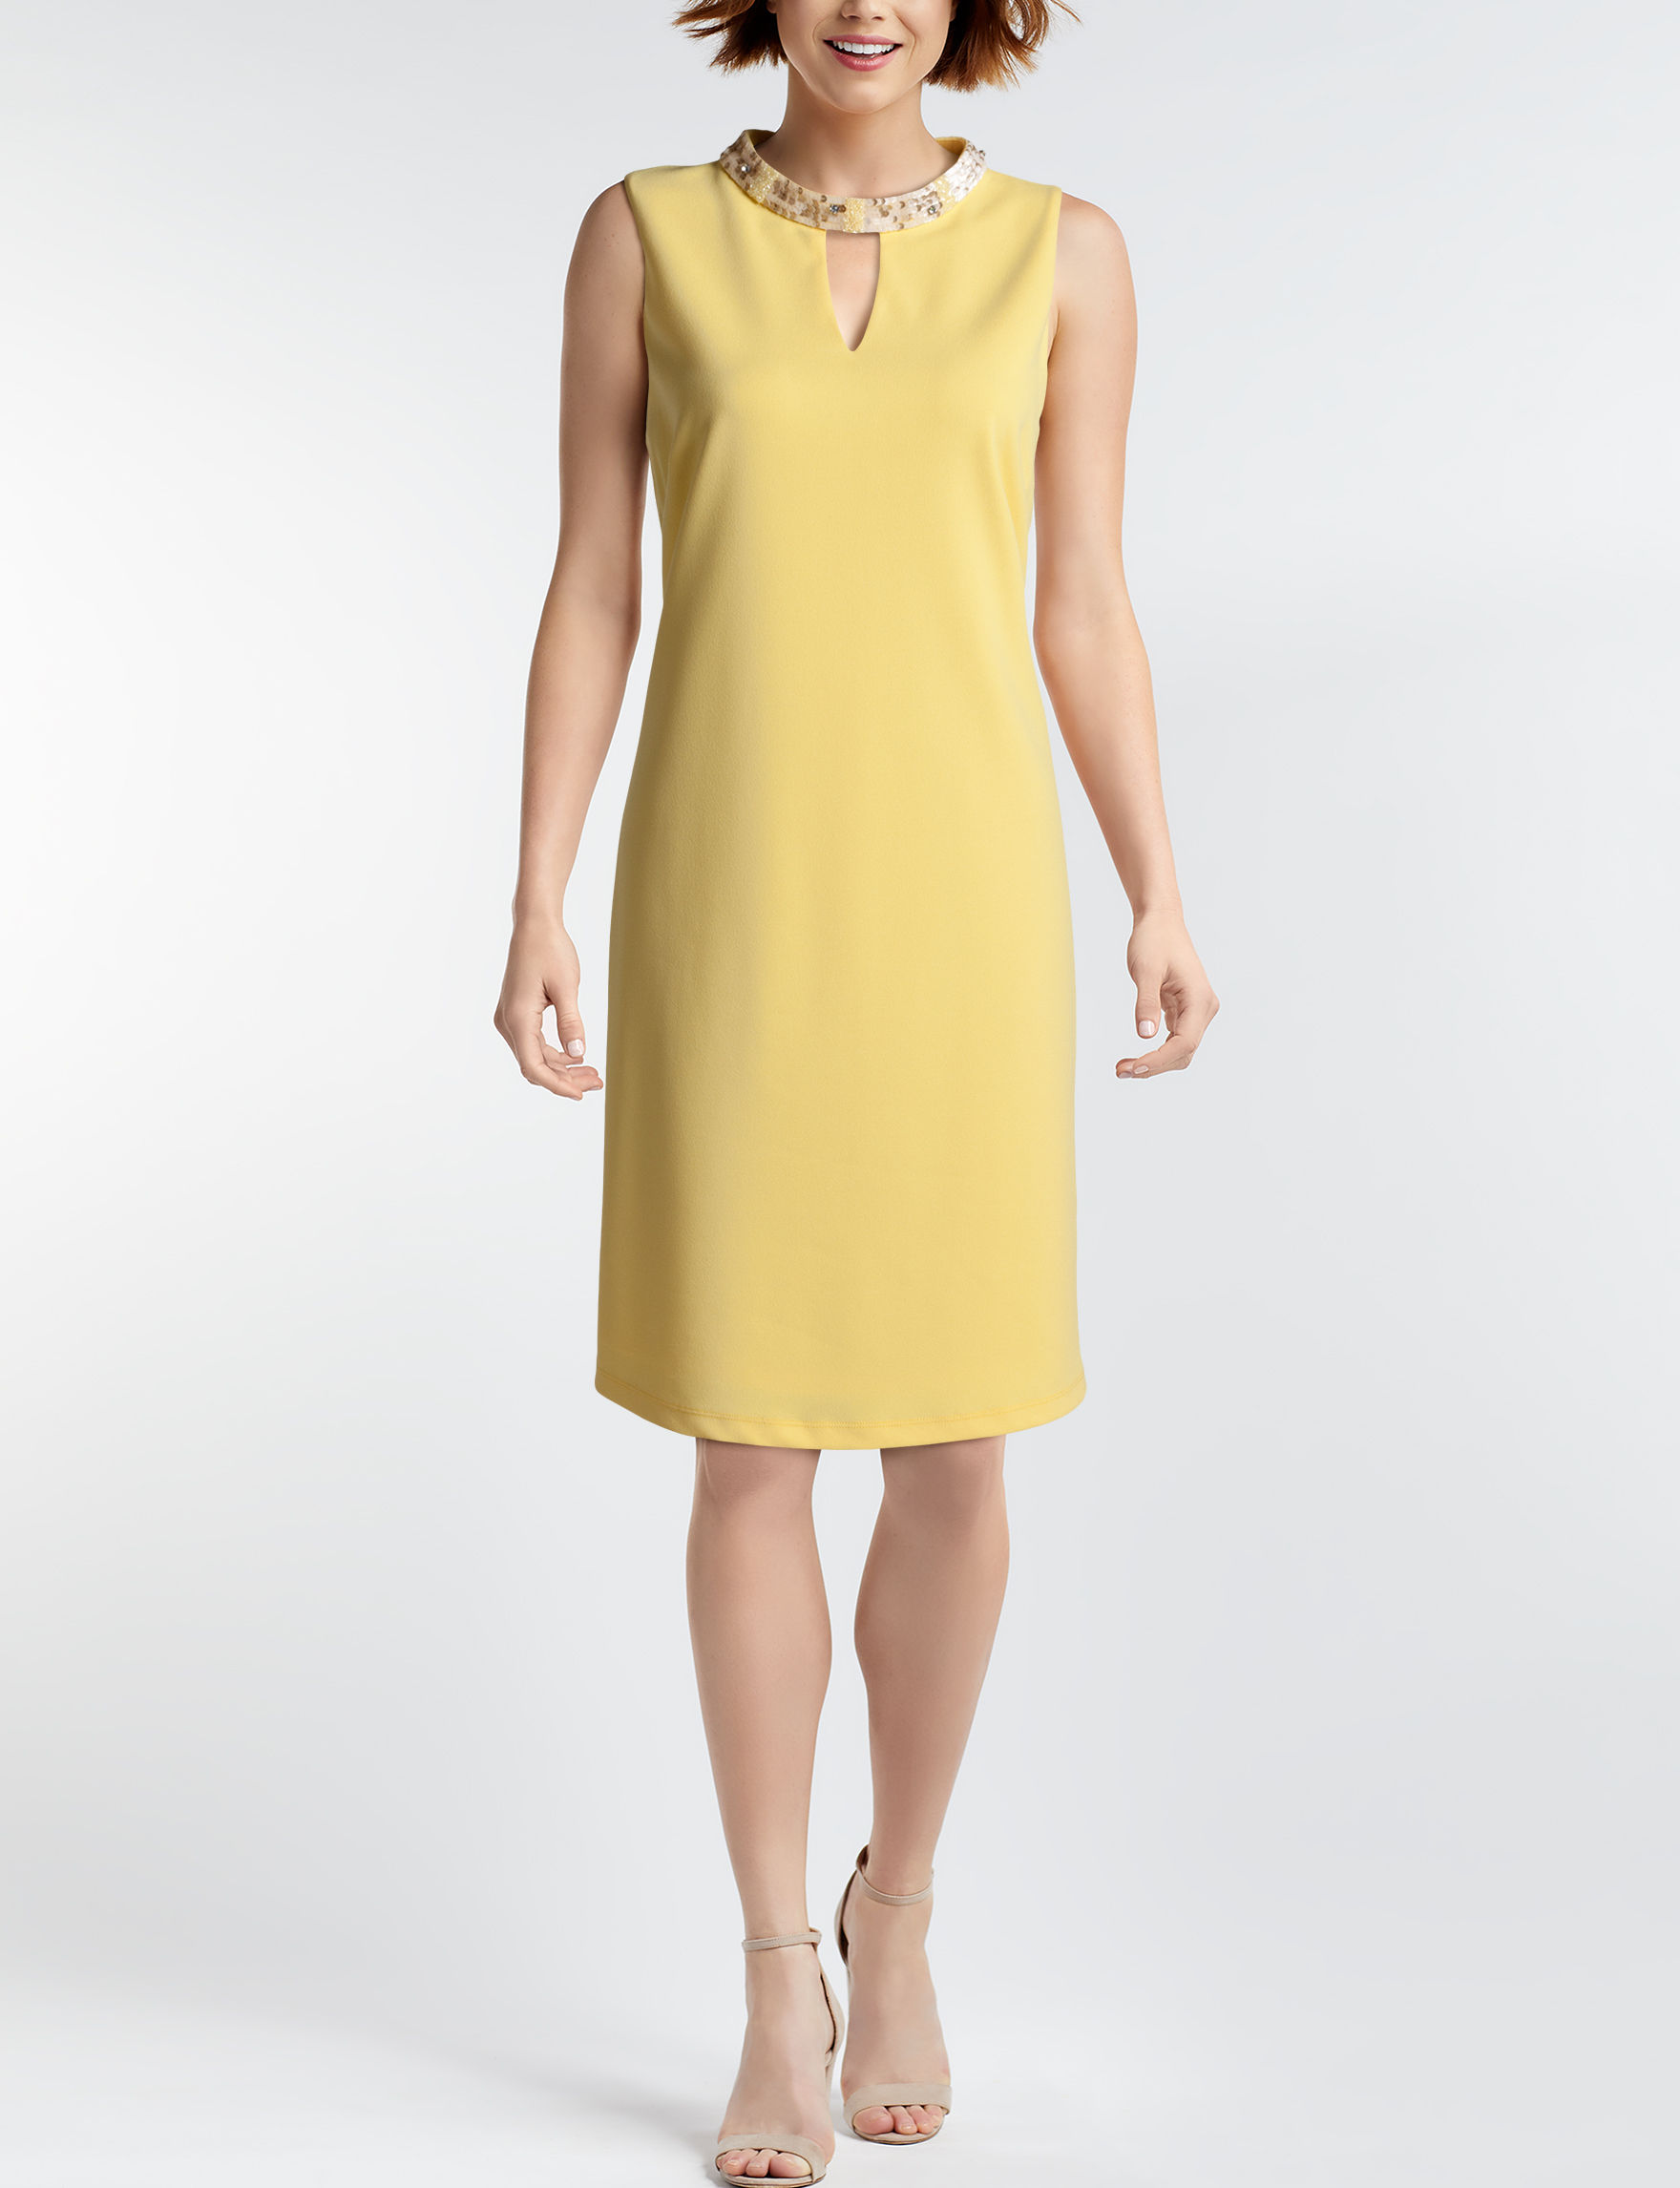 Nine West Yellow Everyday & Casual Shift Dresses